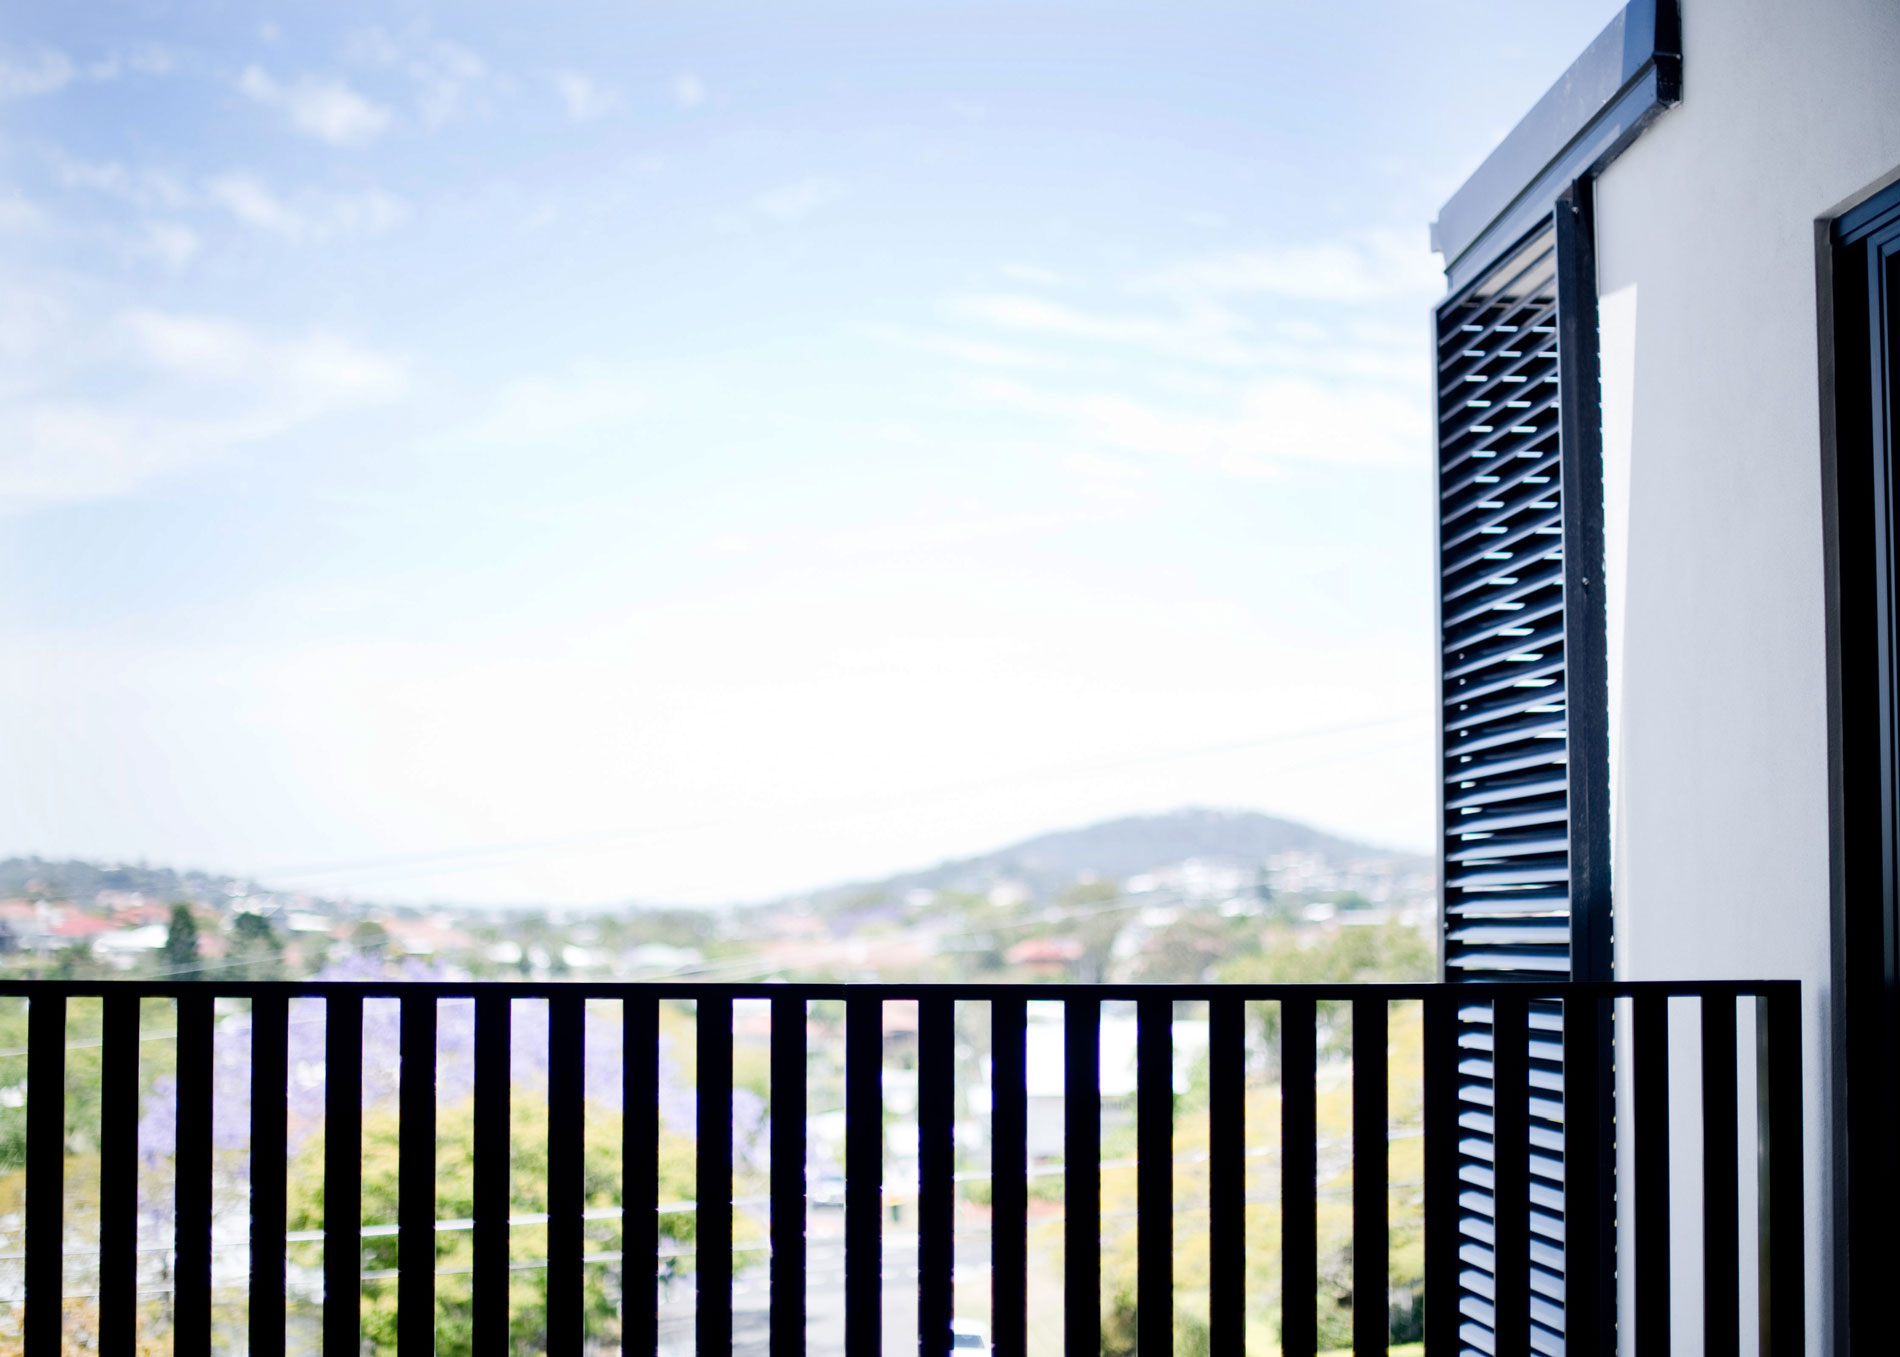 Balcony on Apex Apartments by Mosaic